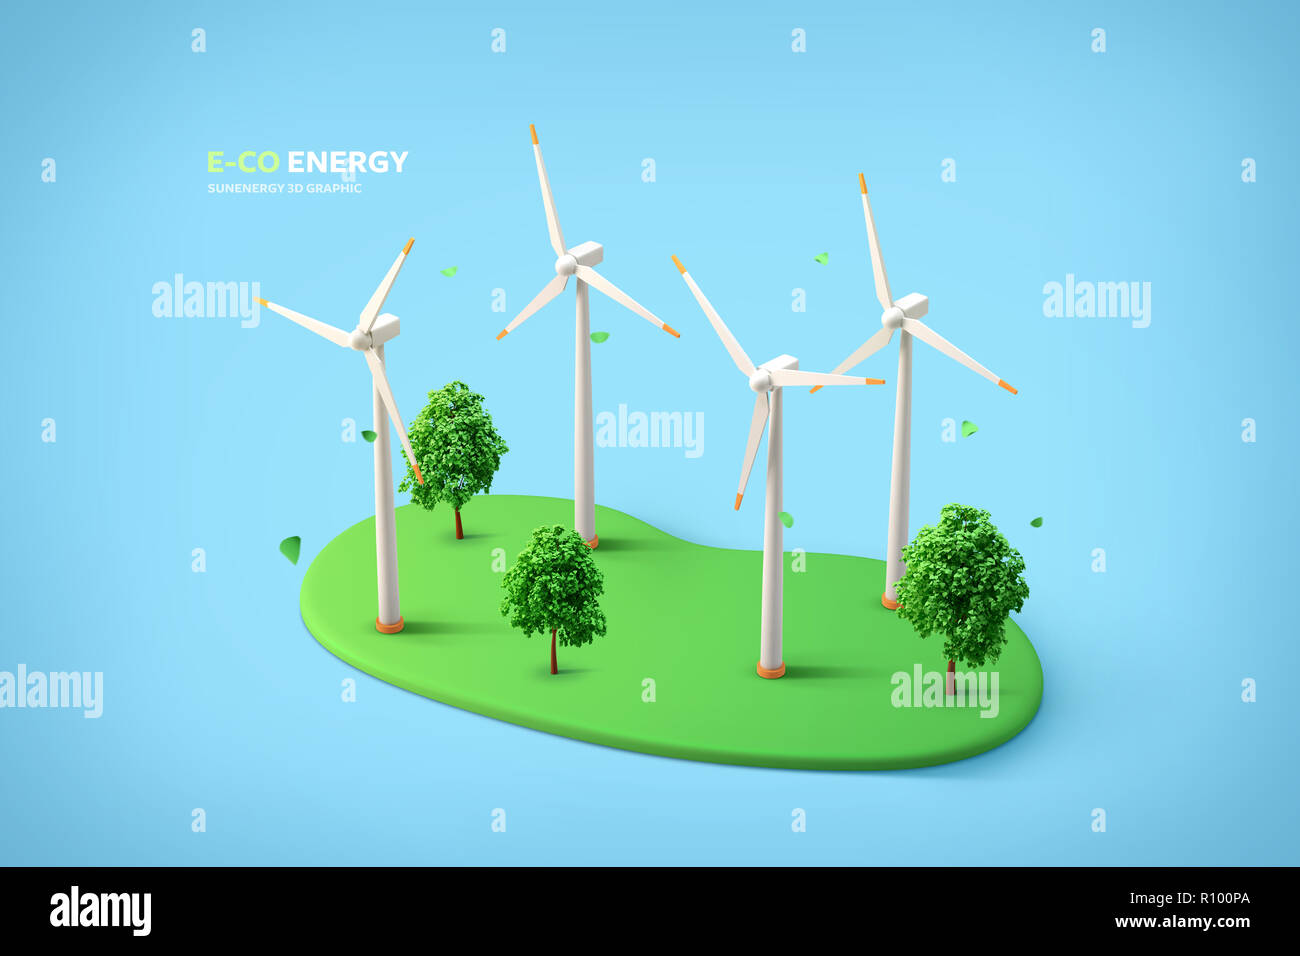 Graphic design of Eco power, solar panels, wind turbines and so on